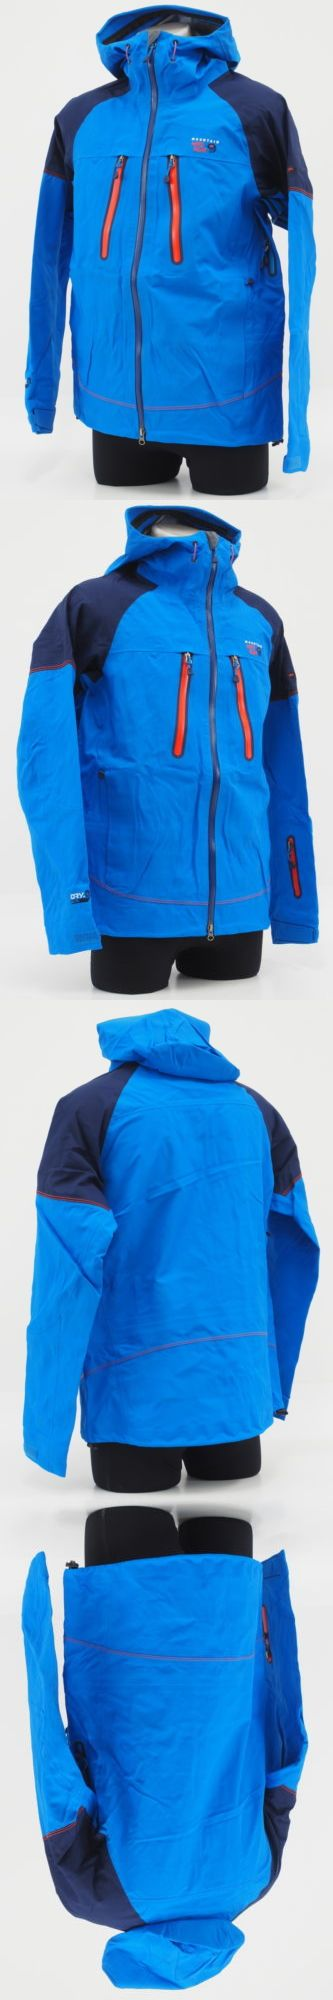 Coats and Jackets 26346: New! Mountain Hardwear Blue Size Medium Snowpocalypse Ski Snowboard Jacket -> BUY IT NOW ONLY: $149.99 on eBay!